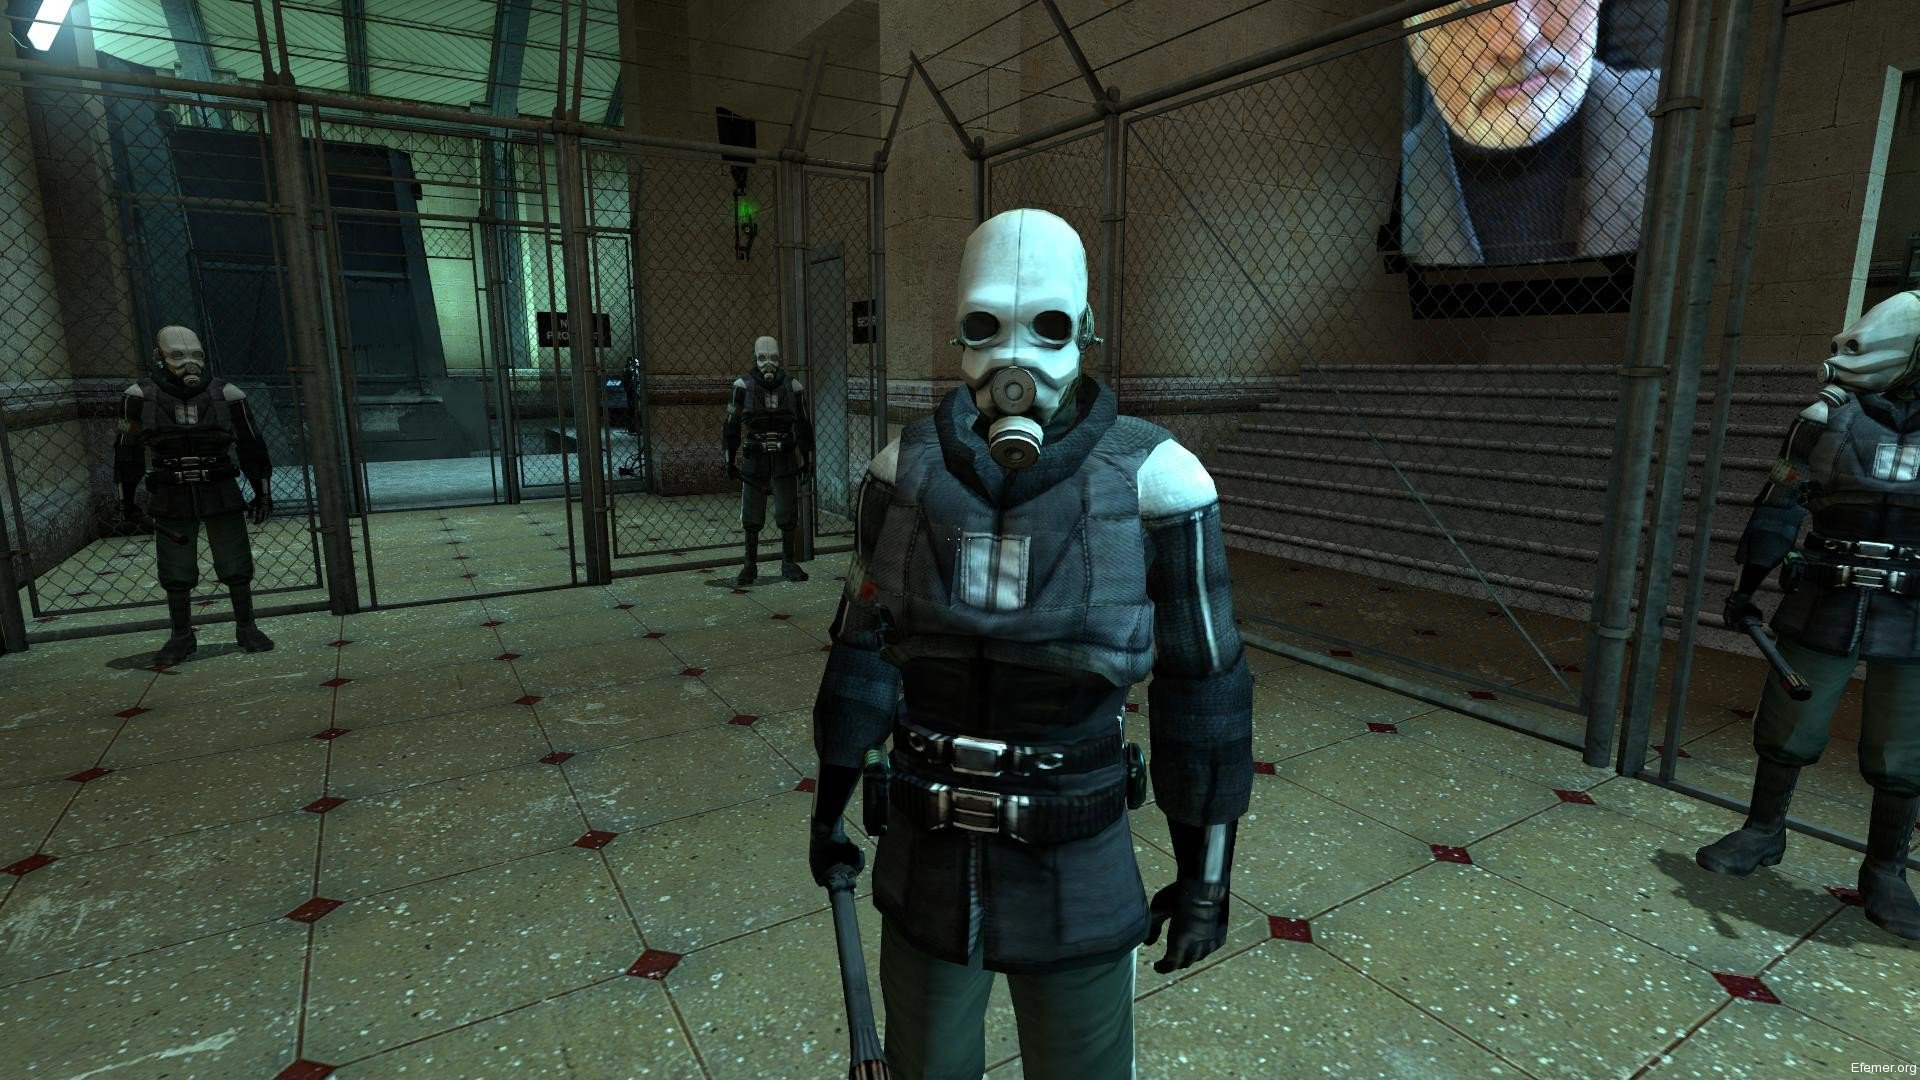 G-man hl2jpg wikipedia:copyright law of the united states